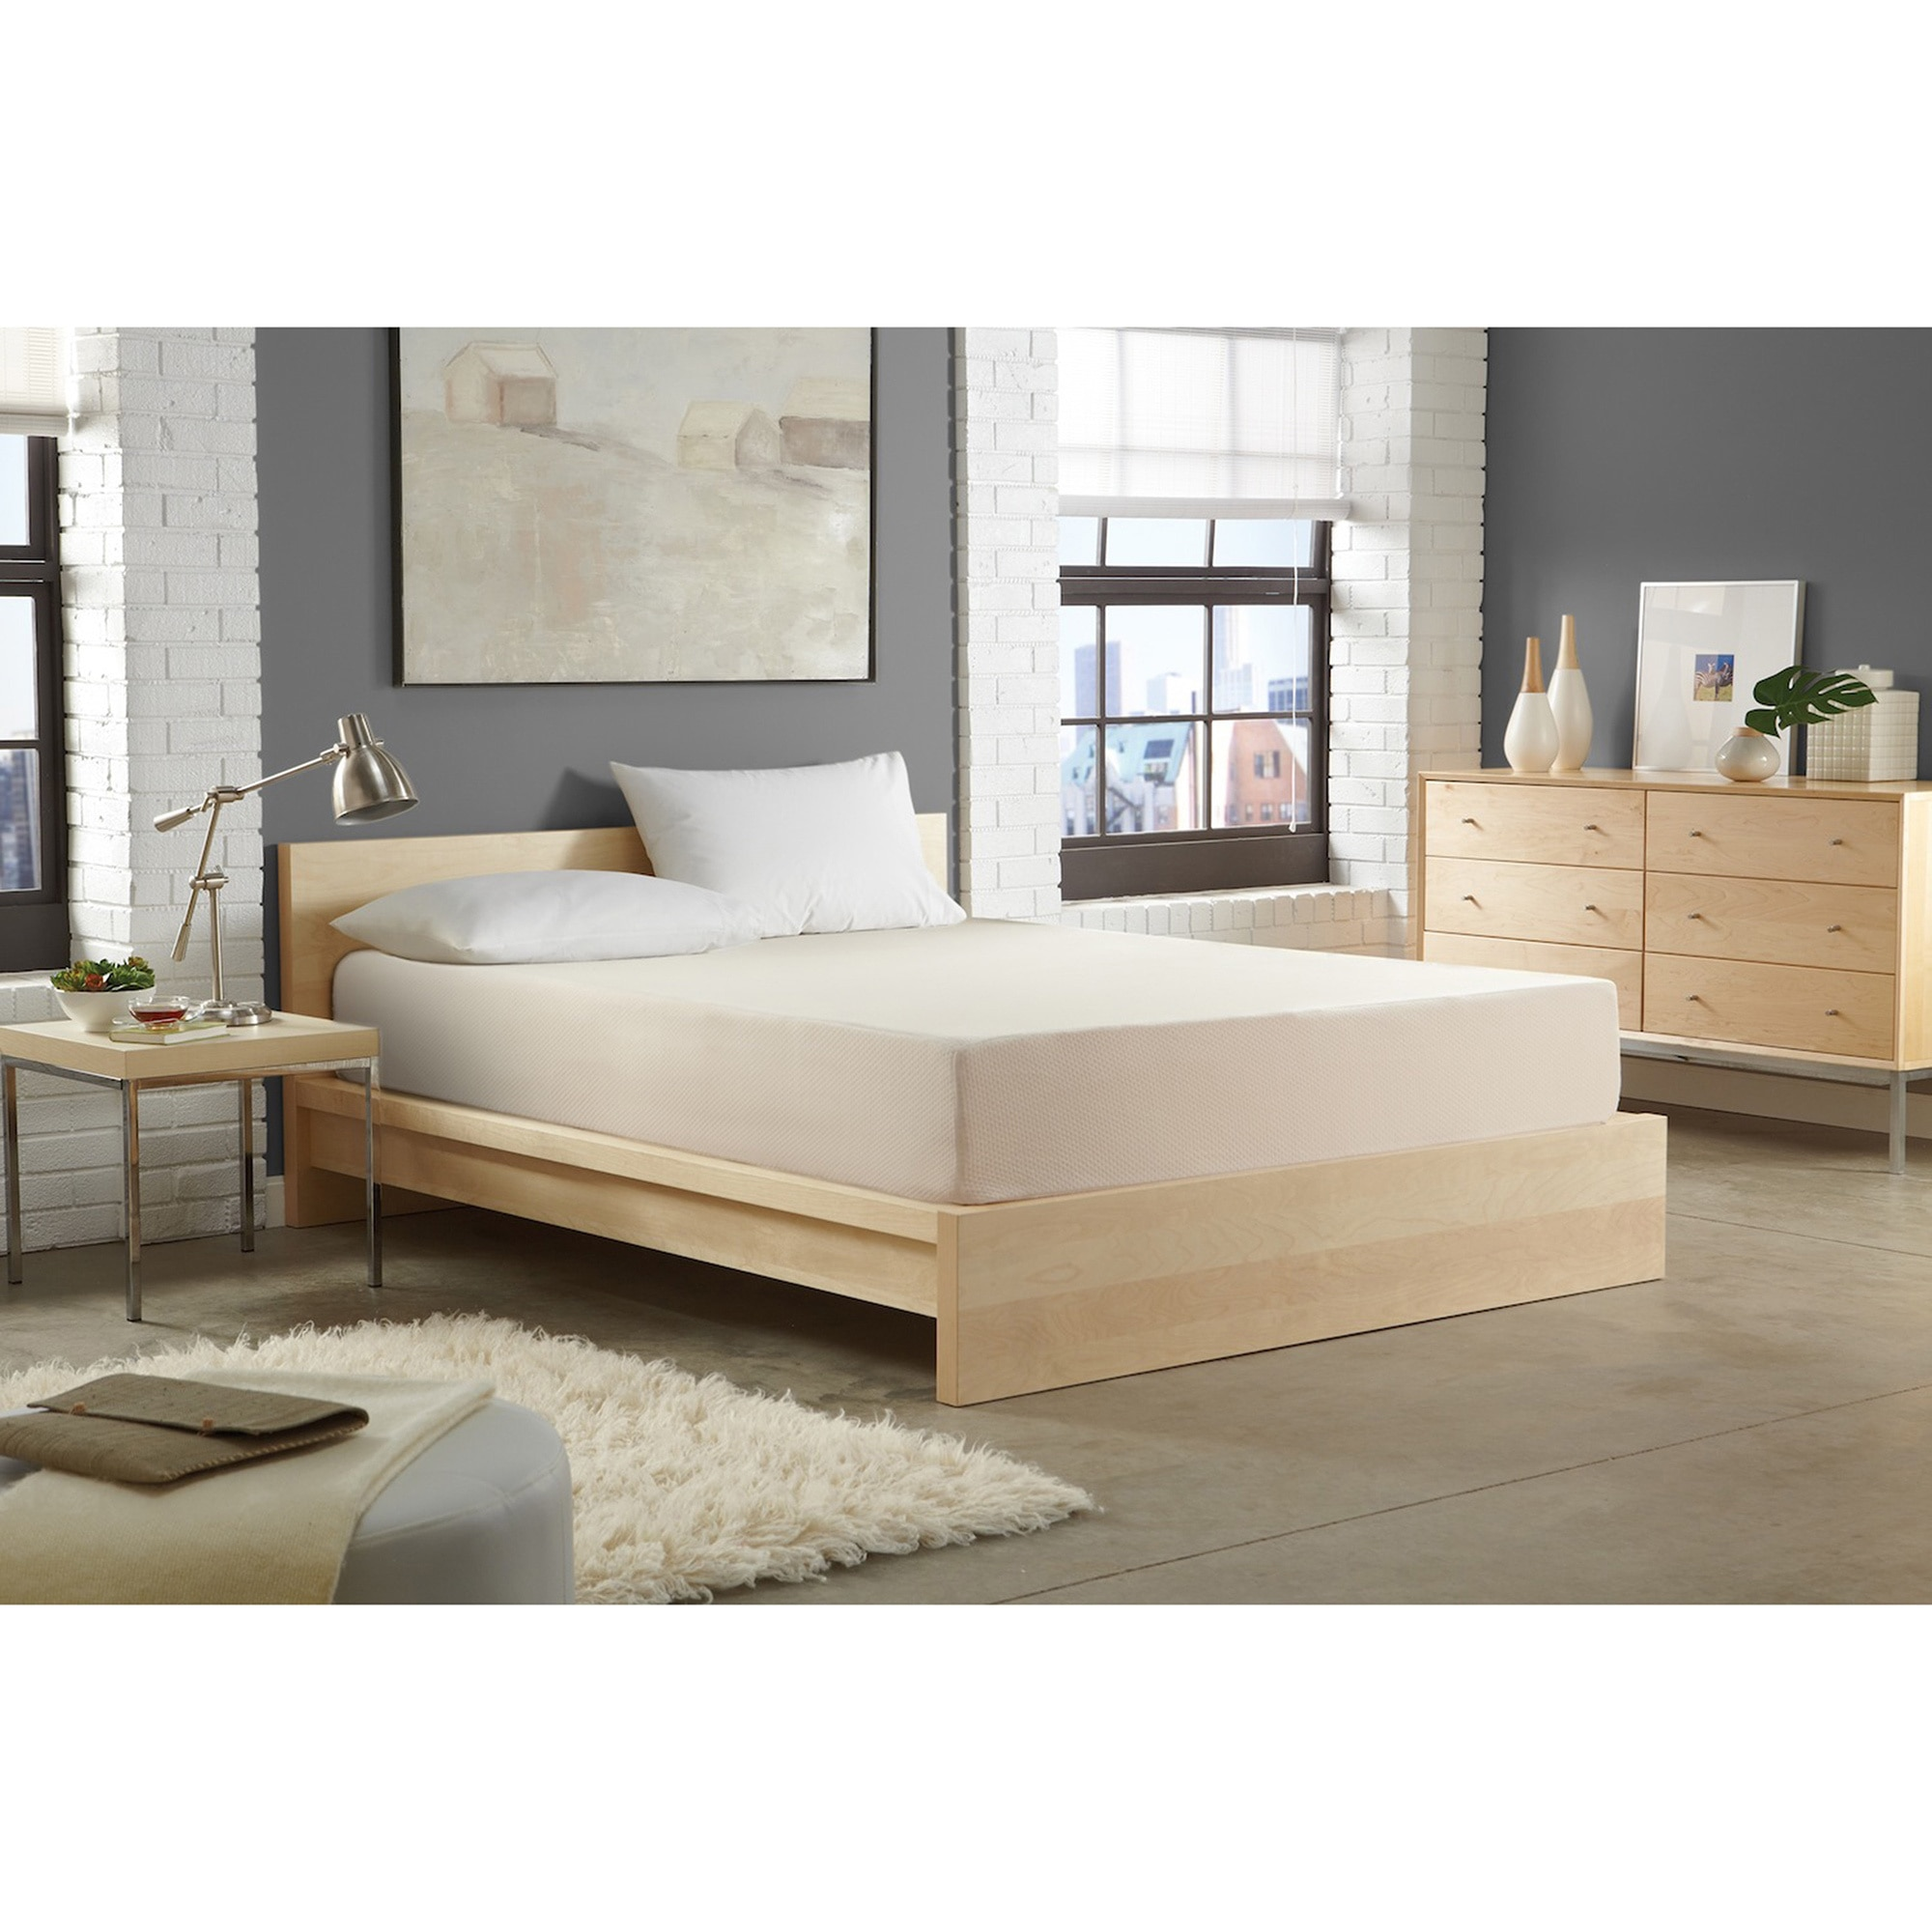 WHITE by Sarah Peyton Home Collection WHITE by Sarah Peyton 10-inch Convection Cooled Plush Support Full-size Memory Foam Mattress